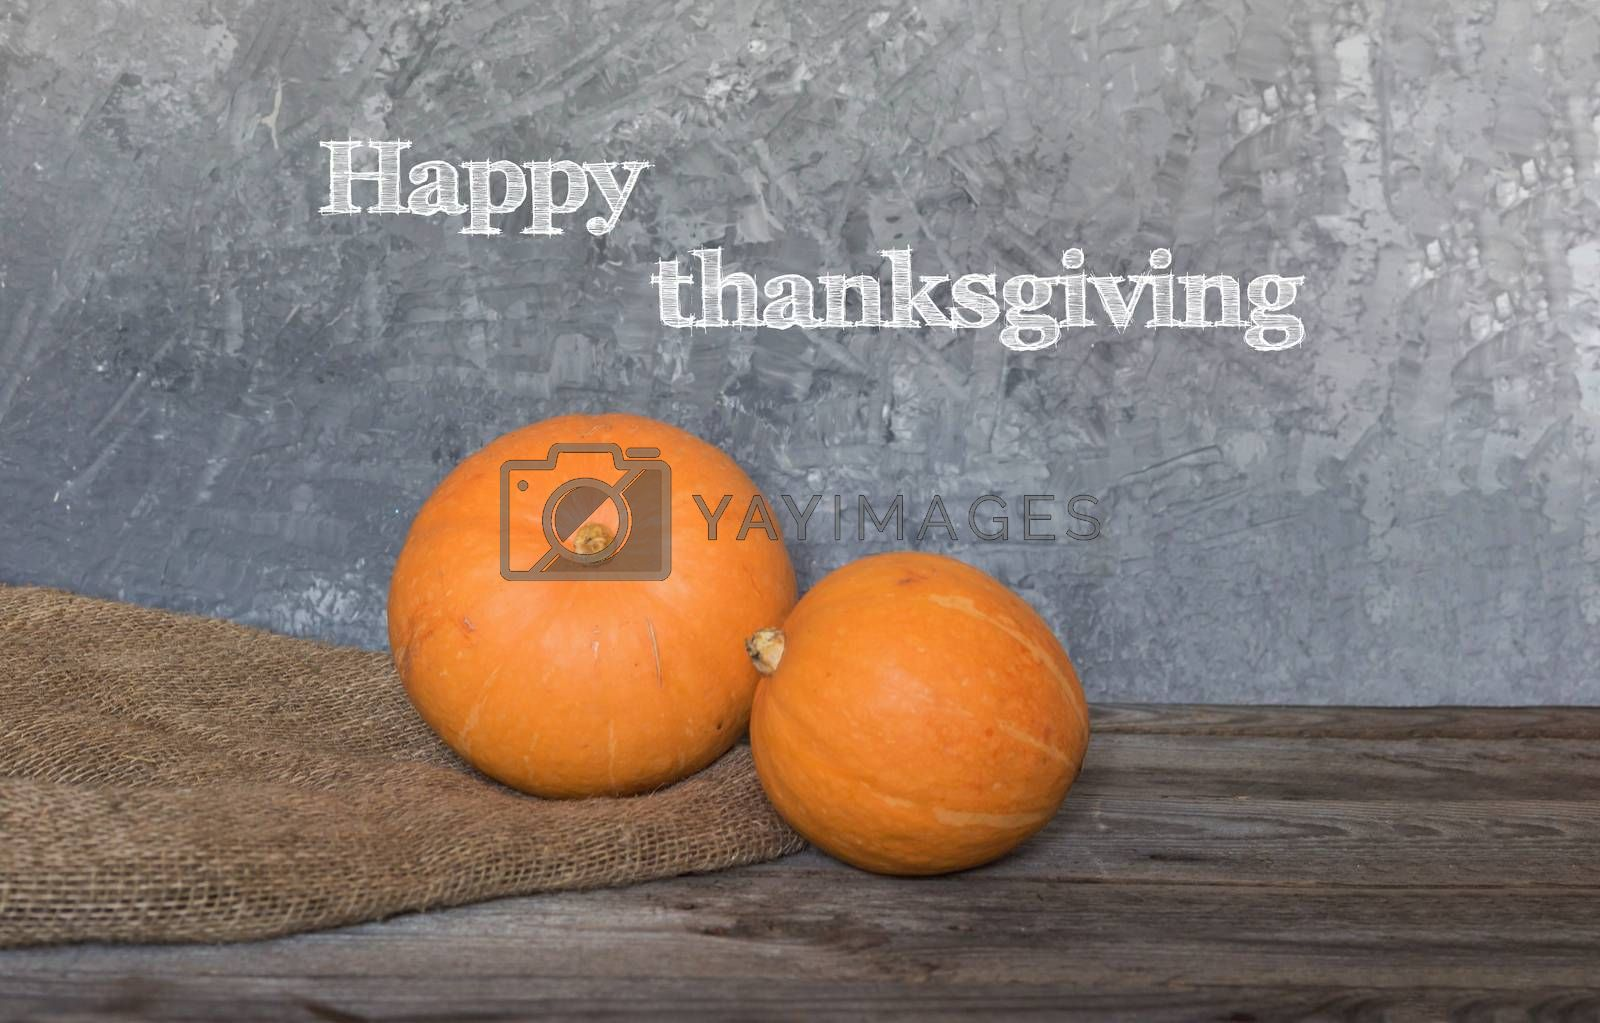 Happy Thanksgiving greeting text with colorful pumpkins over dark wooden and Blackboard background